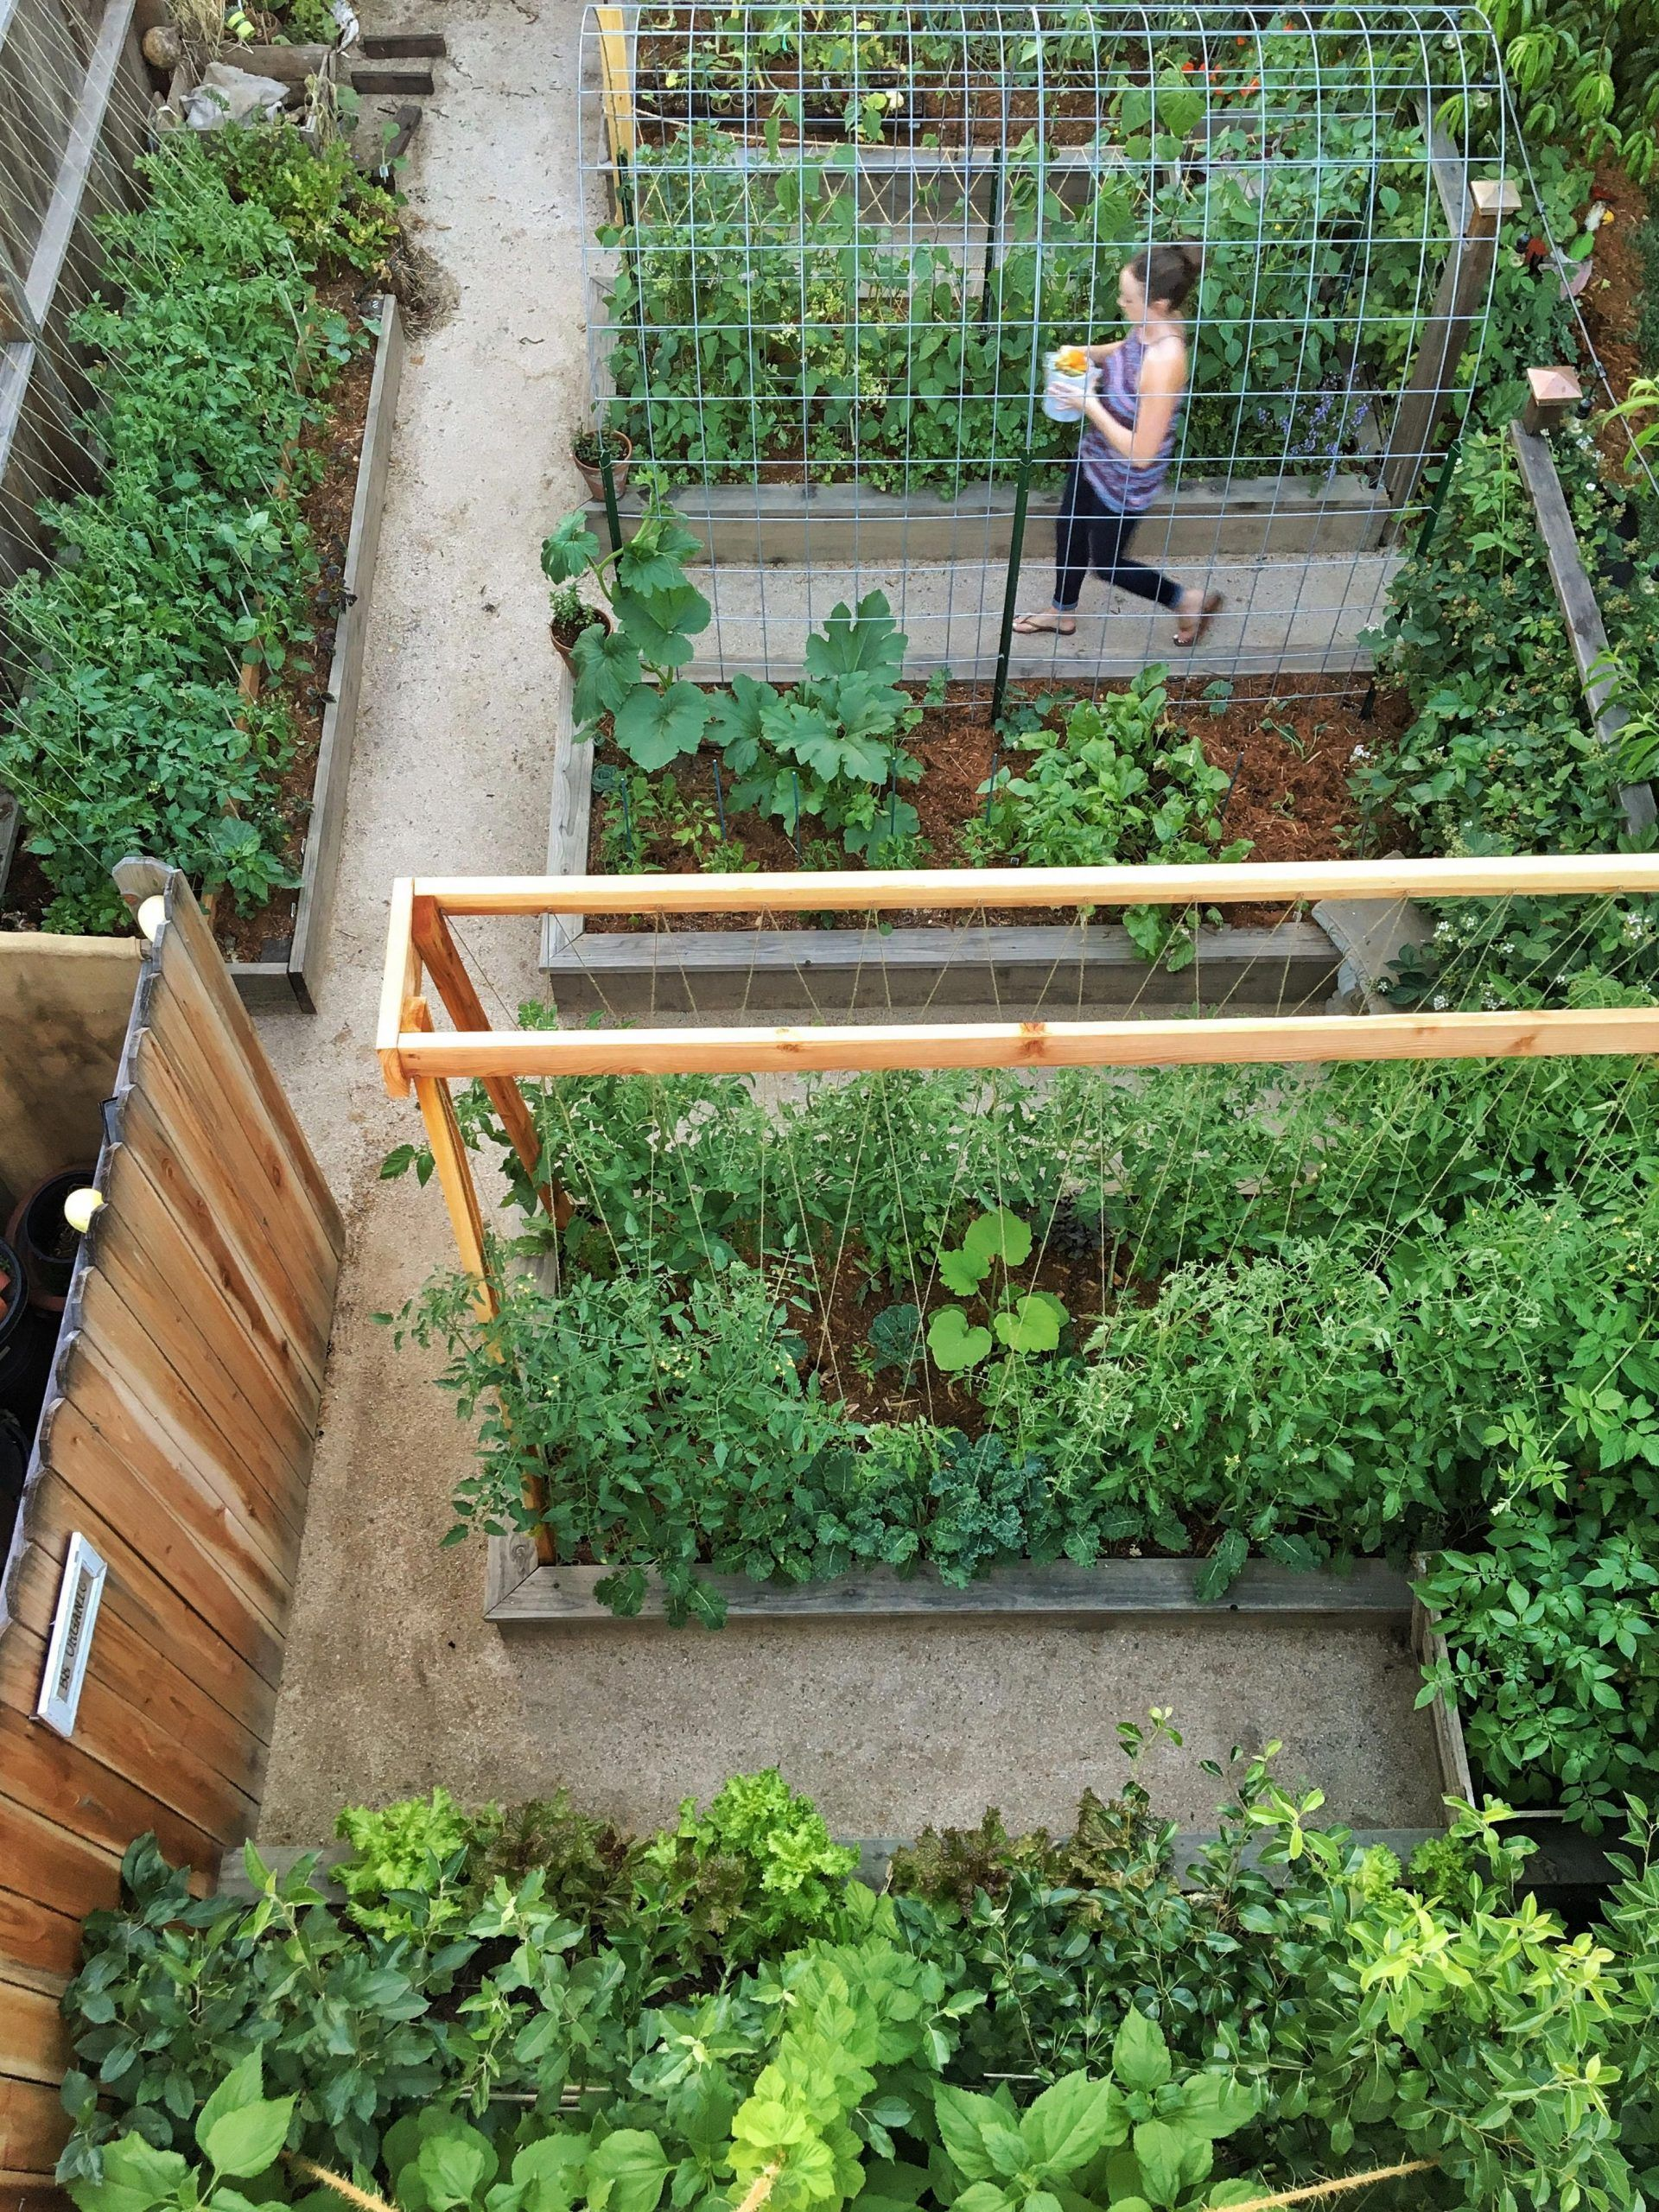 Vegetable Gardening Tips and Tricks | Natural planet - Our garden has ...#garden #gardening #natural #planet #tips #tricks #vegetable